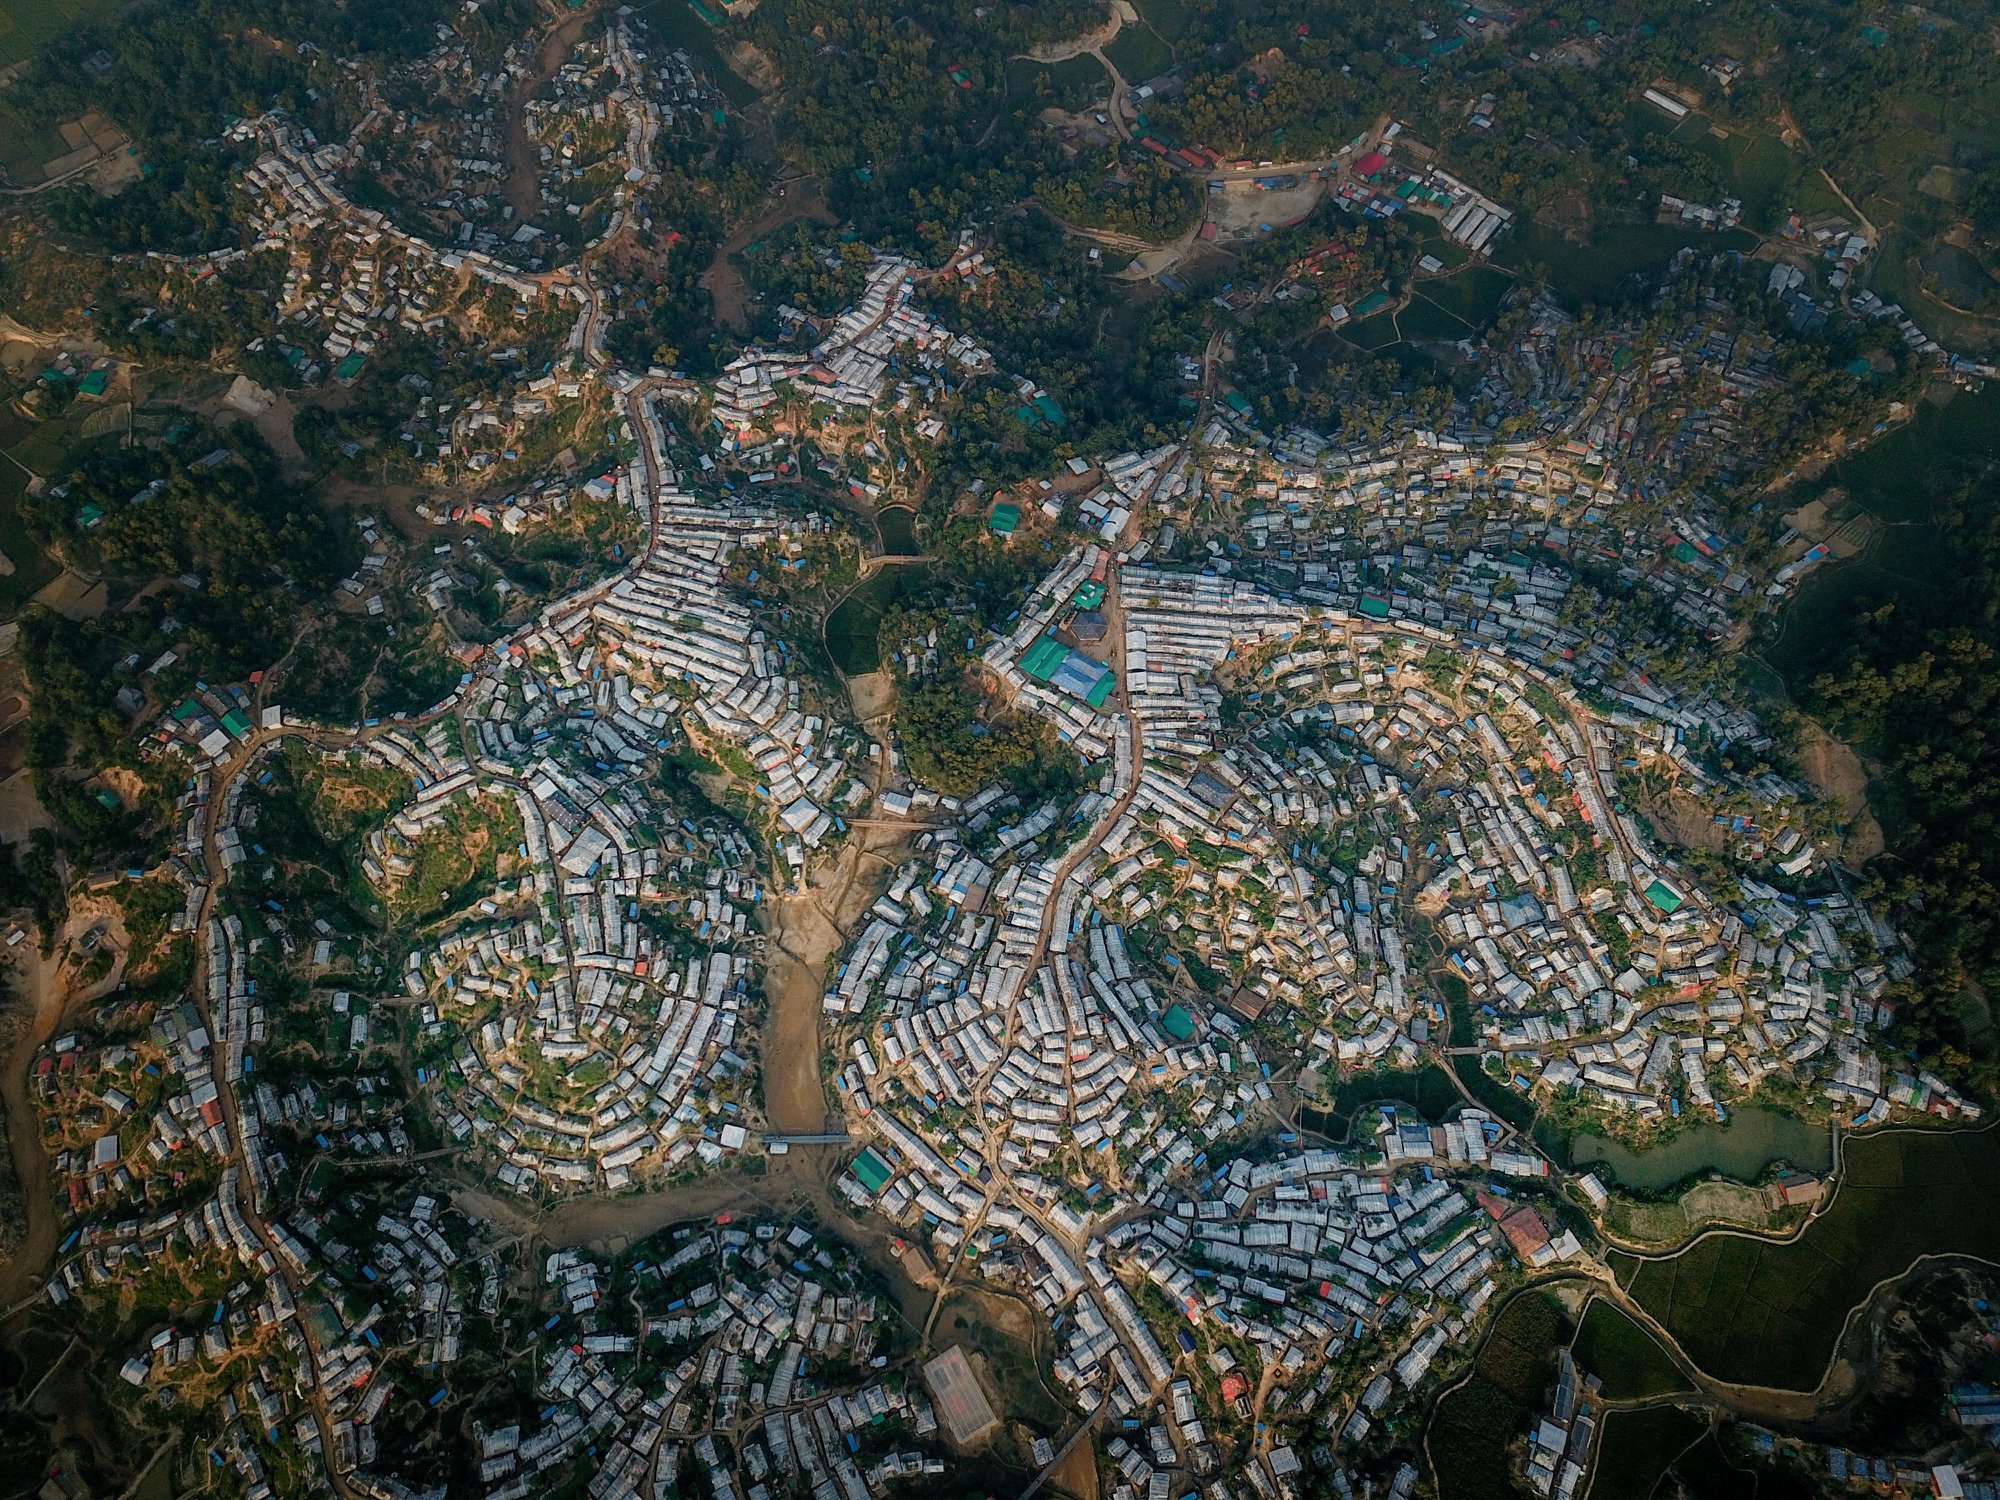 Bird's eye view shows Rohingya refugee camps with rows of houses with paths between them bordered by forests